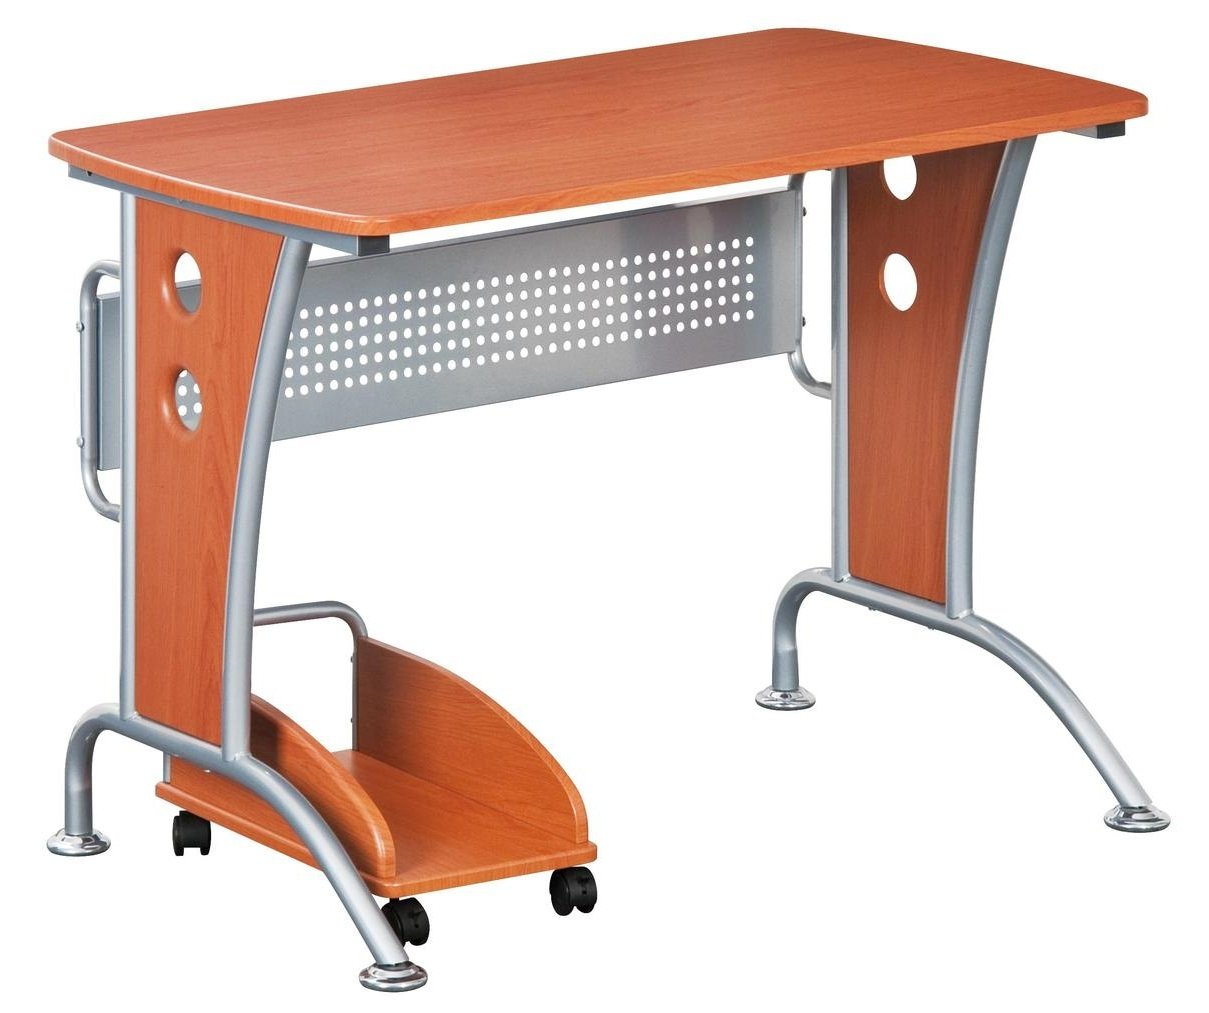 Modern Computer Desk With Mobile CPU Caddy. Color Dark Honey